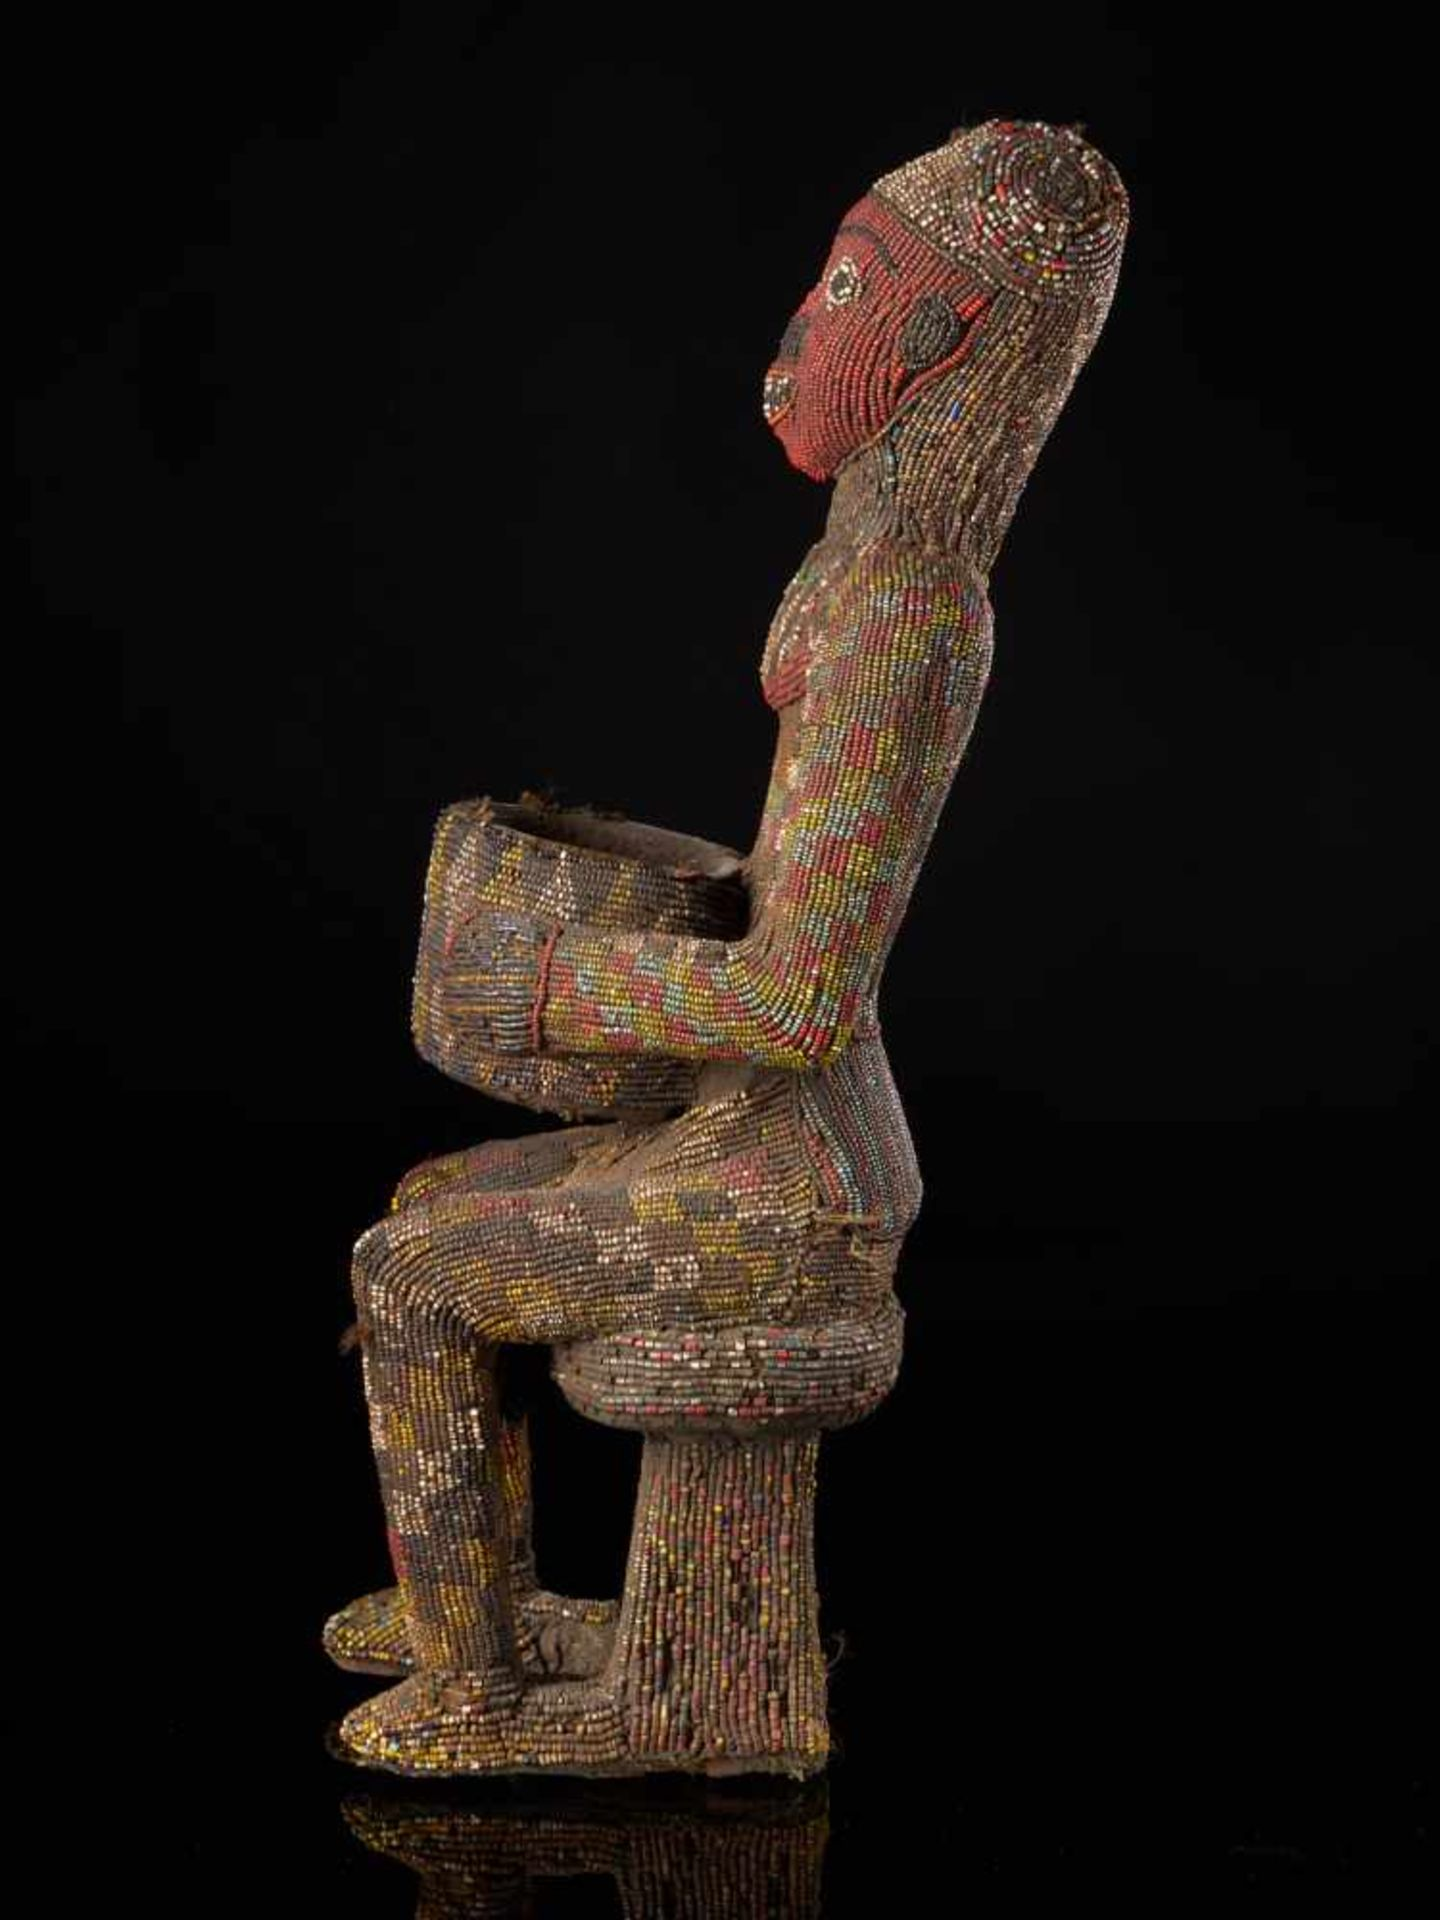 Beaded Figure Of Cupholder - Tribal ArtA beaded figure of a man sitting on a stool, holding a cup. - Bild 2 aus 6